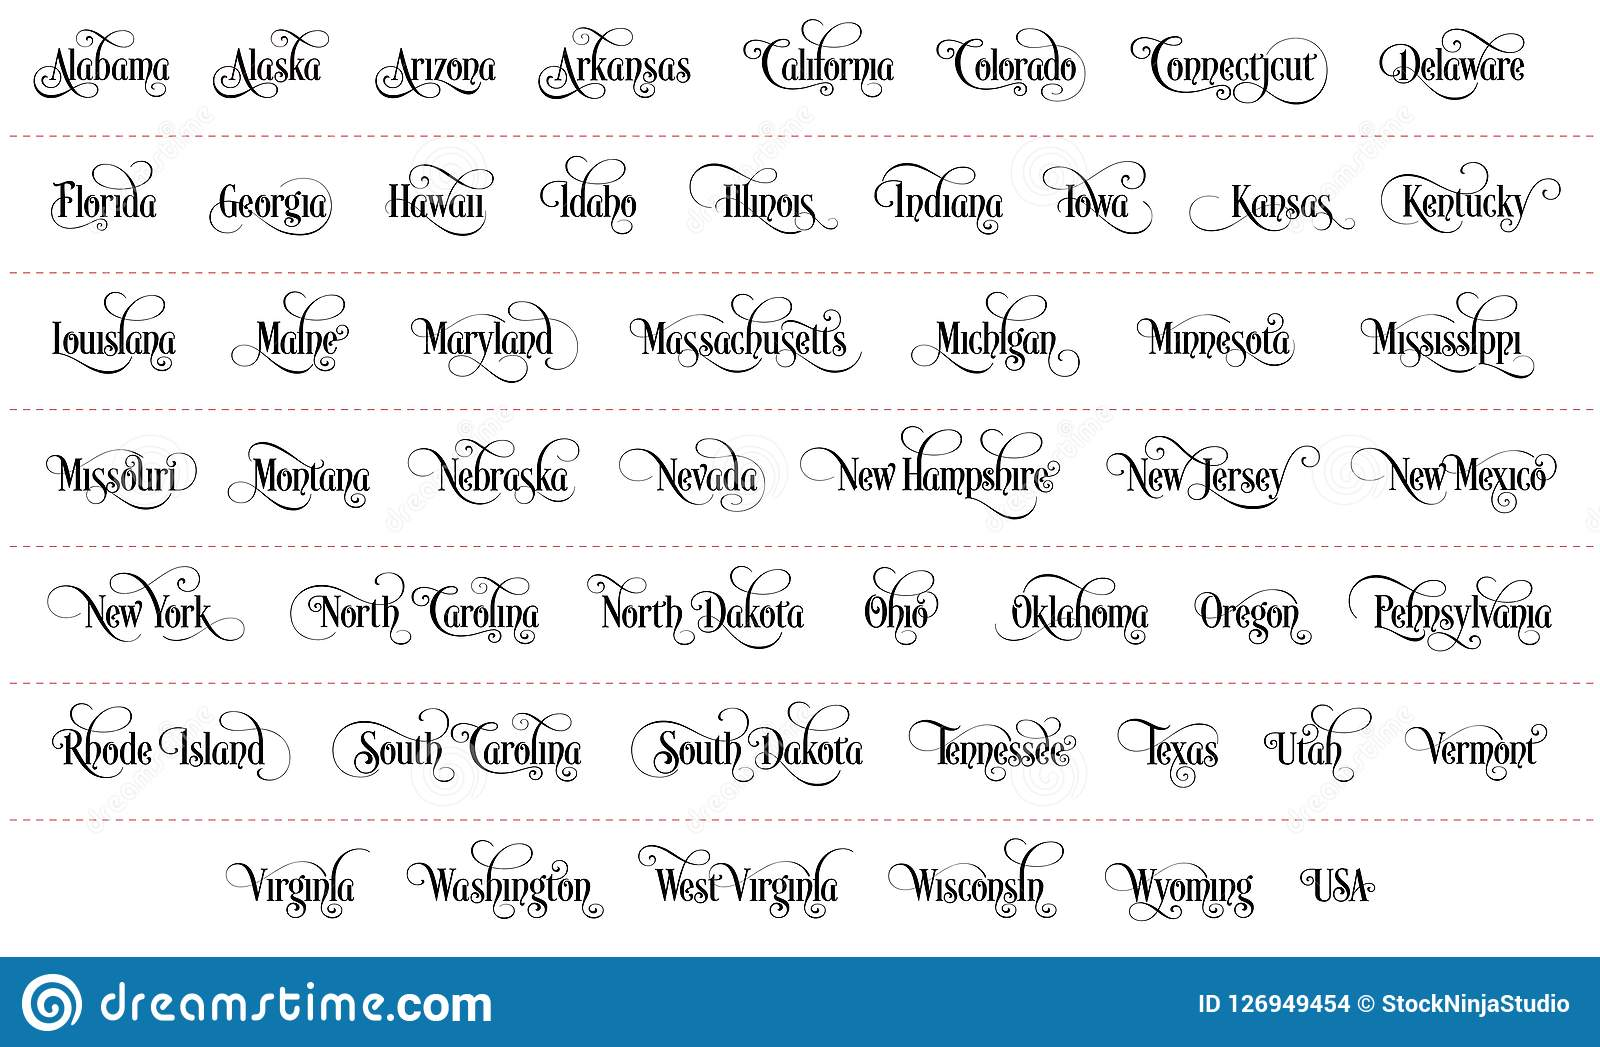 Typography of The USA States All Name Black Handwritten Illustration on White Background